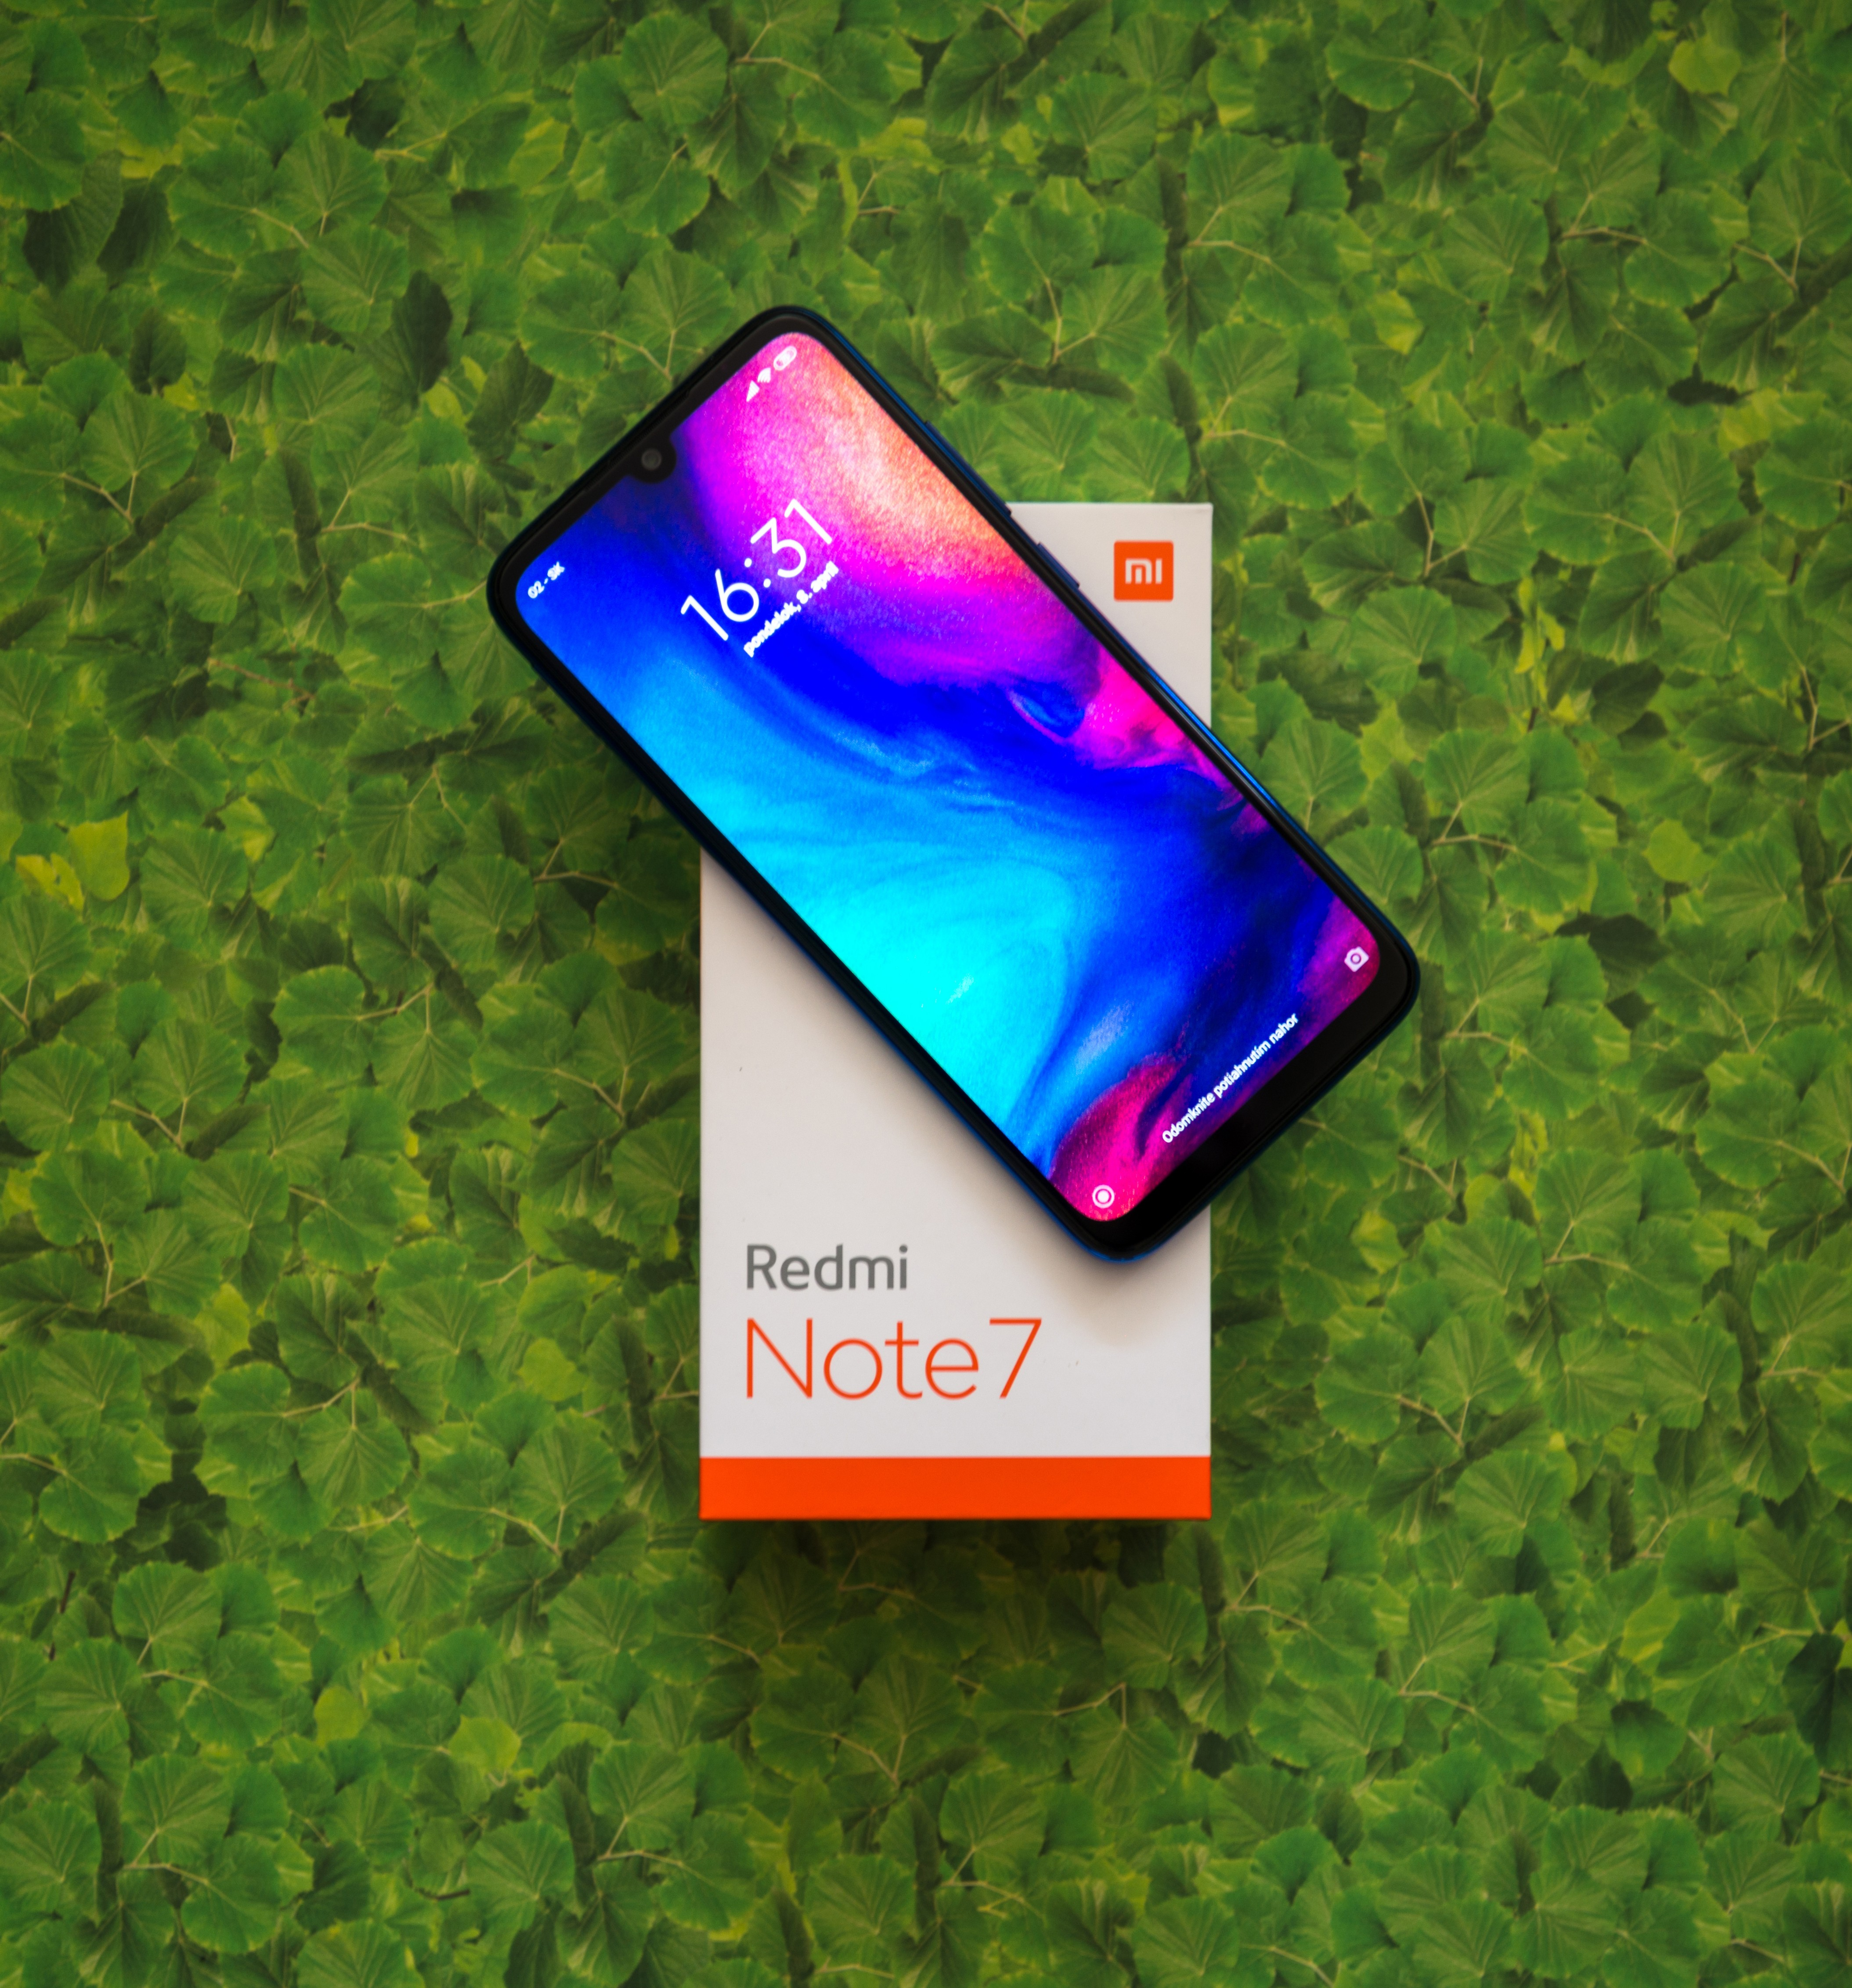 Xiaomi Redmi Note 7: budget smartphone punches way above its US$190